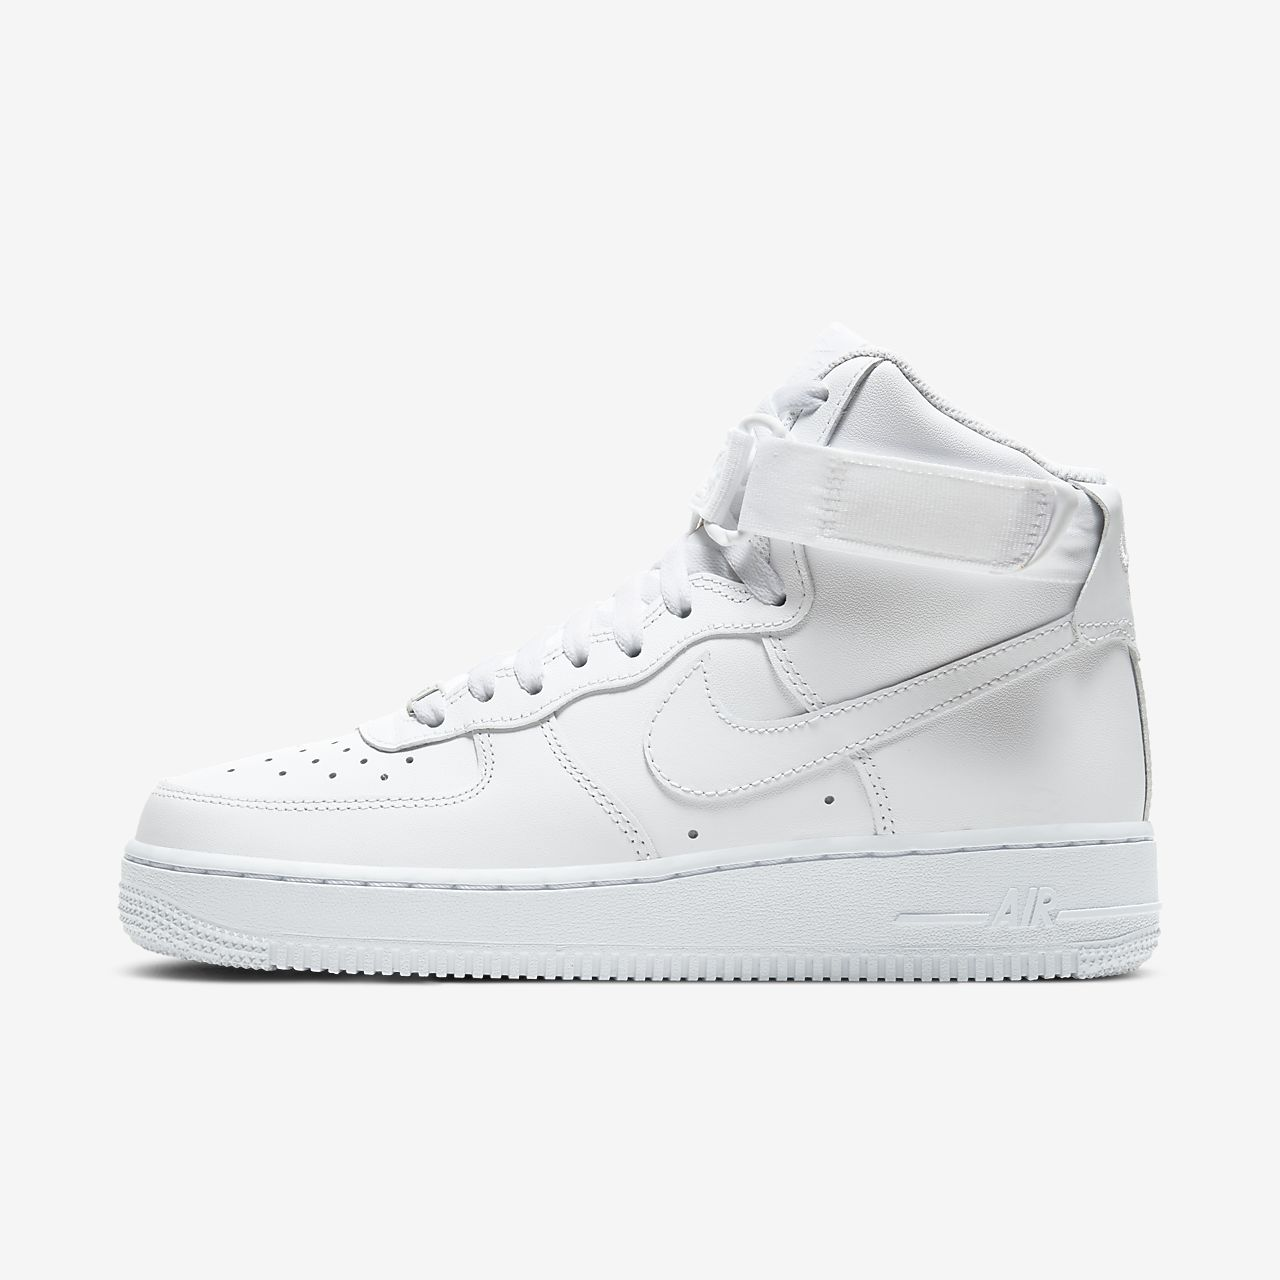 052be1daed8 Nike Air Force 1 High 08 LE Women s Shoe. Nike.com